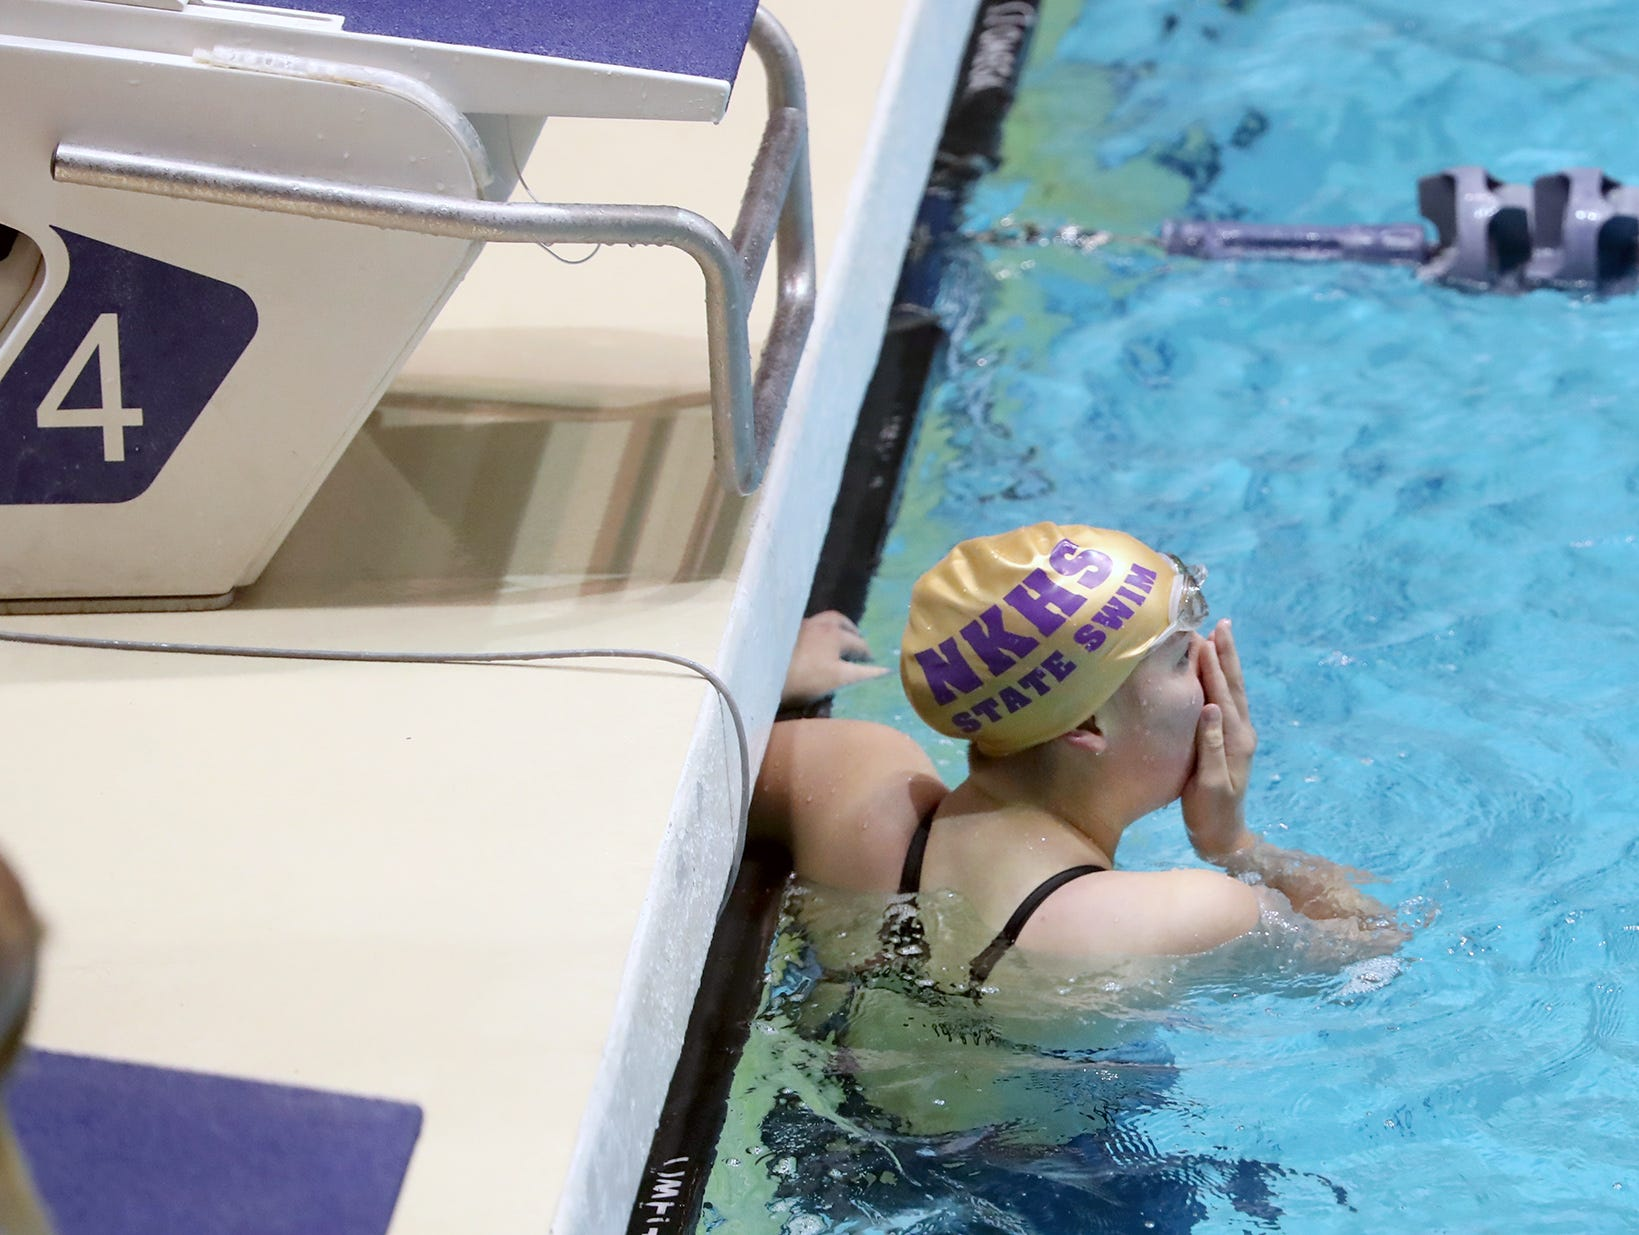 The North Kitsap Girls swim team won the team title at the 2018 2A Girls State Swim & Diving Championships on Saturday, November, 10, 2018 at the King County Aquatics Center, in Federal Way. North swimmer Brianna Hoffman, is shocked after winning the 200 yard freestyle event.